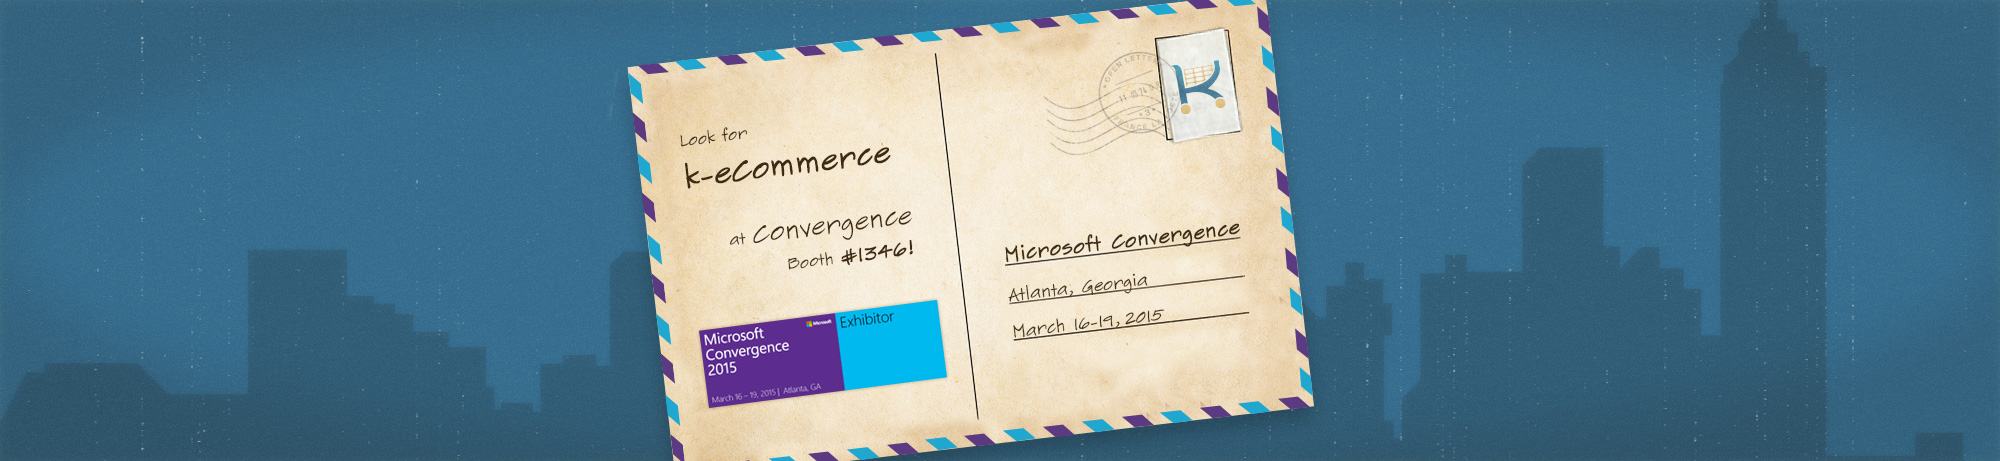 Join k-eCommerce at Convergence 2015